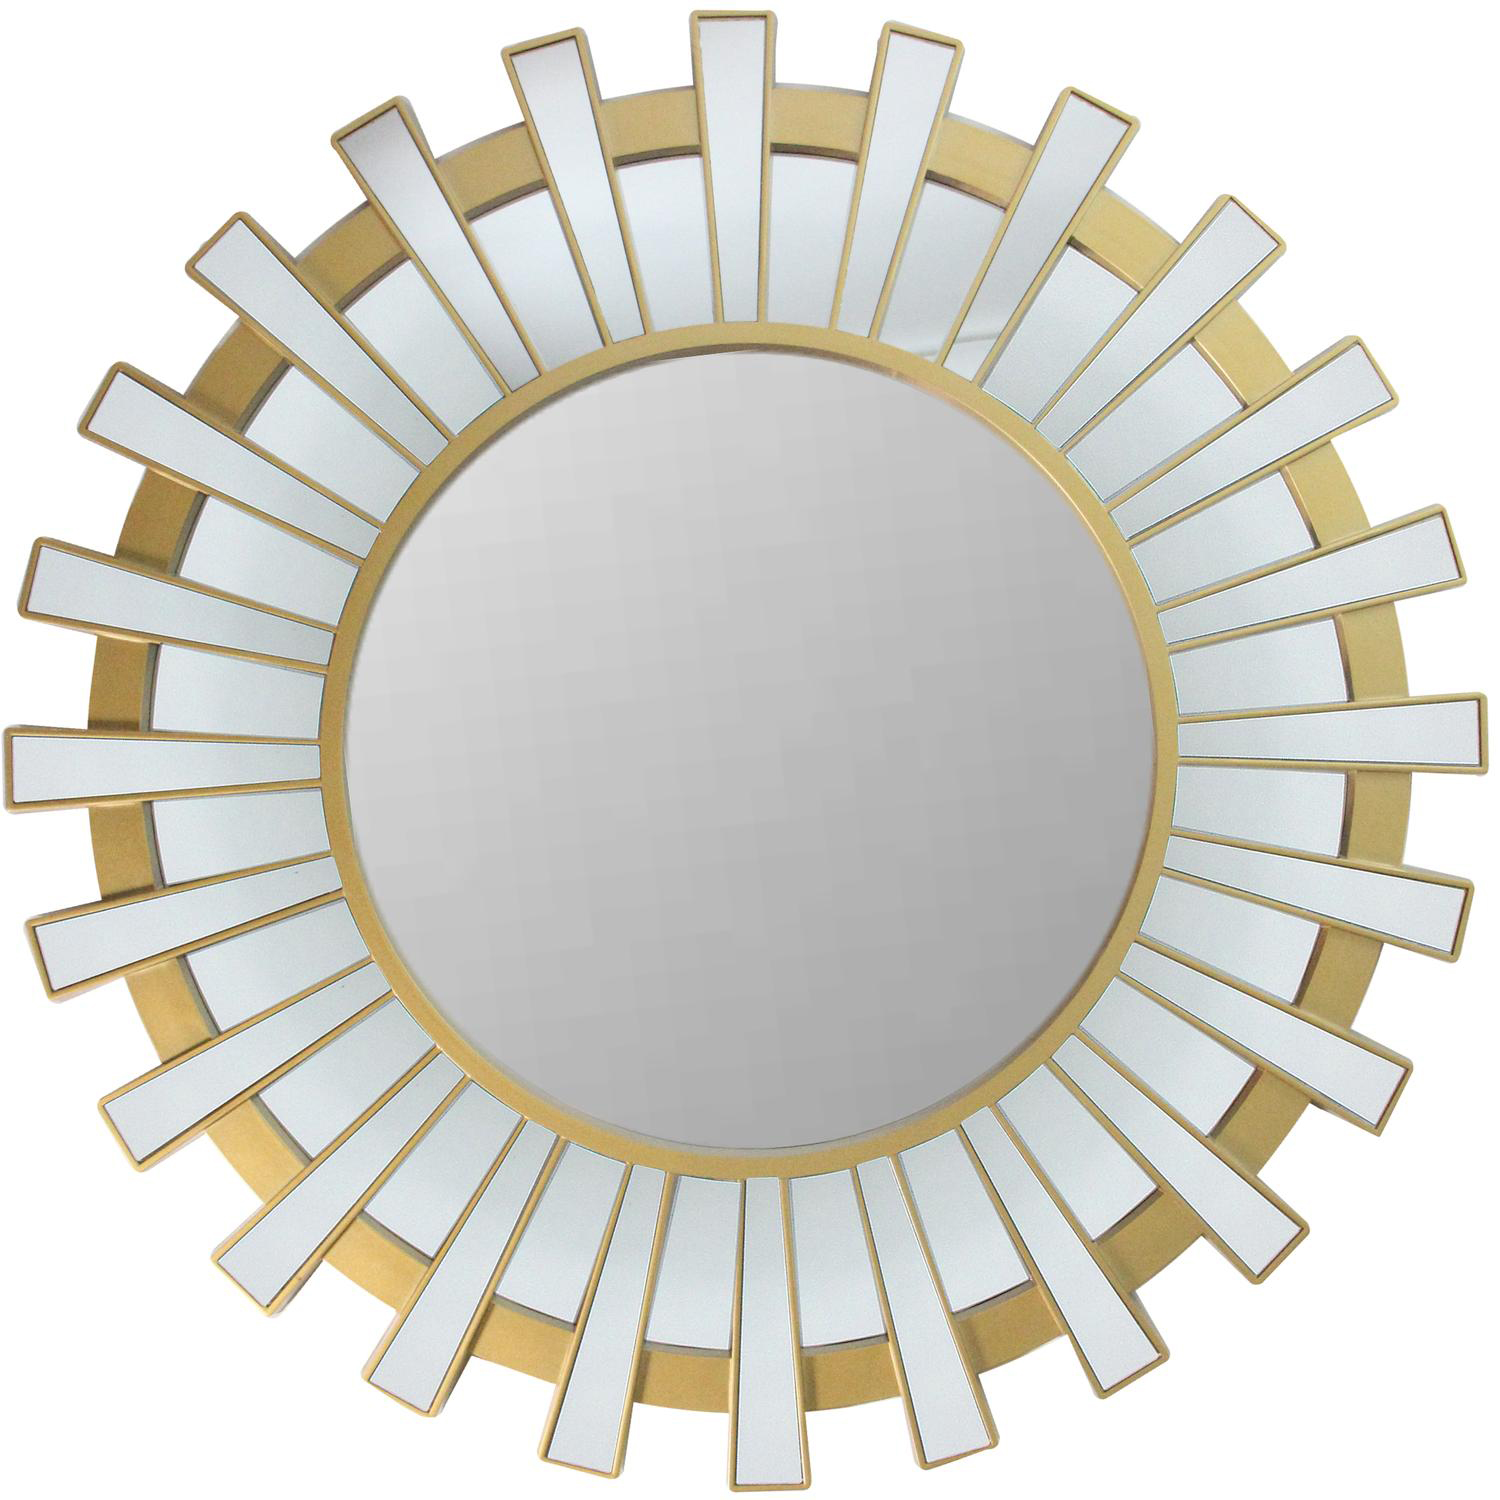 "25.5"" Sparkling Regal Sunburst Matte Gold Wall Mirror"